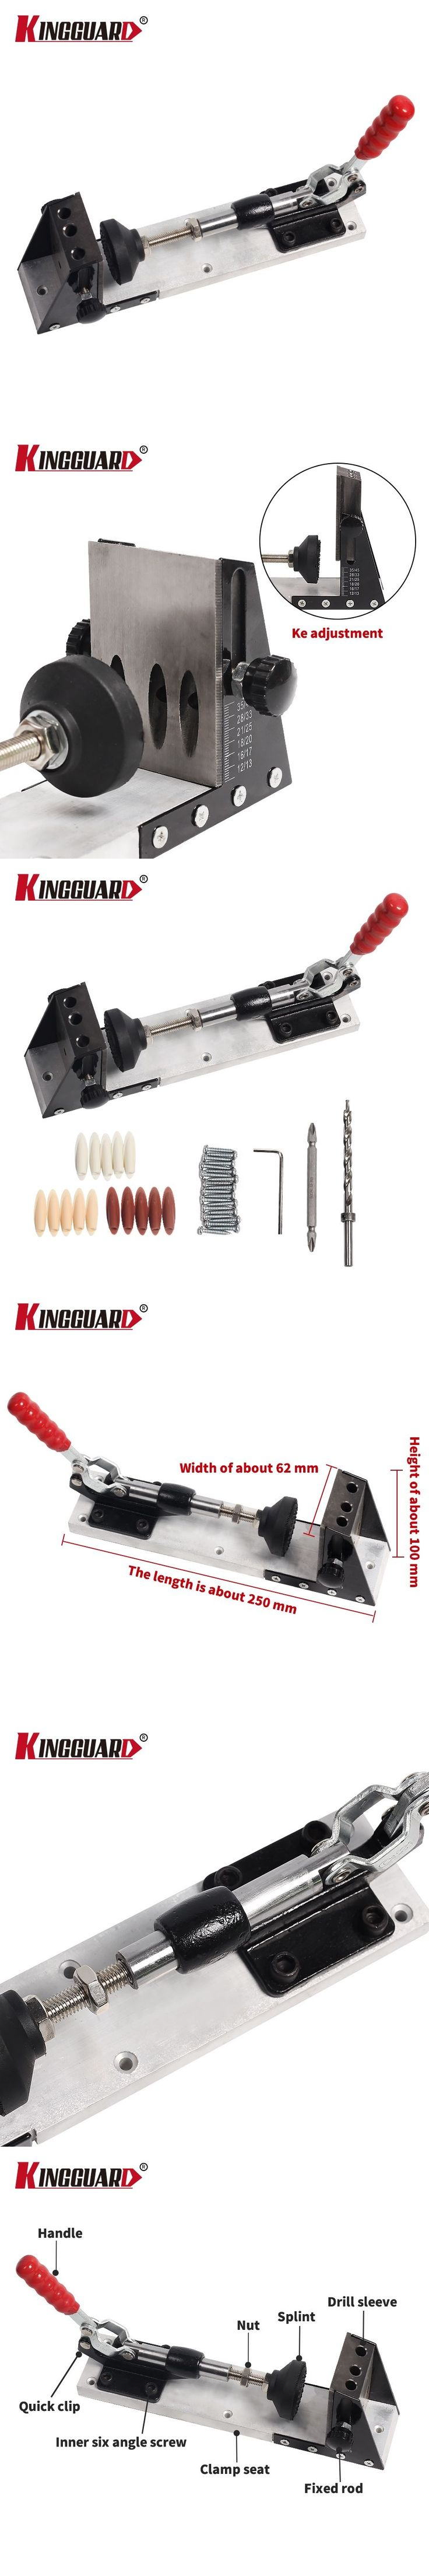 Woodworking Guide Carpenter Kit System,inclined hole drill tools,clamp base Drill Bit Kit System,Pocket Hole Jig Kit Hand tools #woodworkingtools